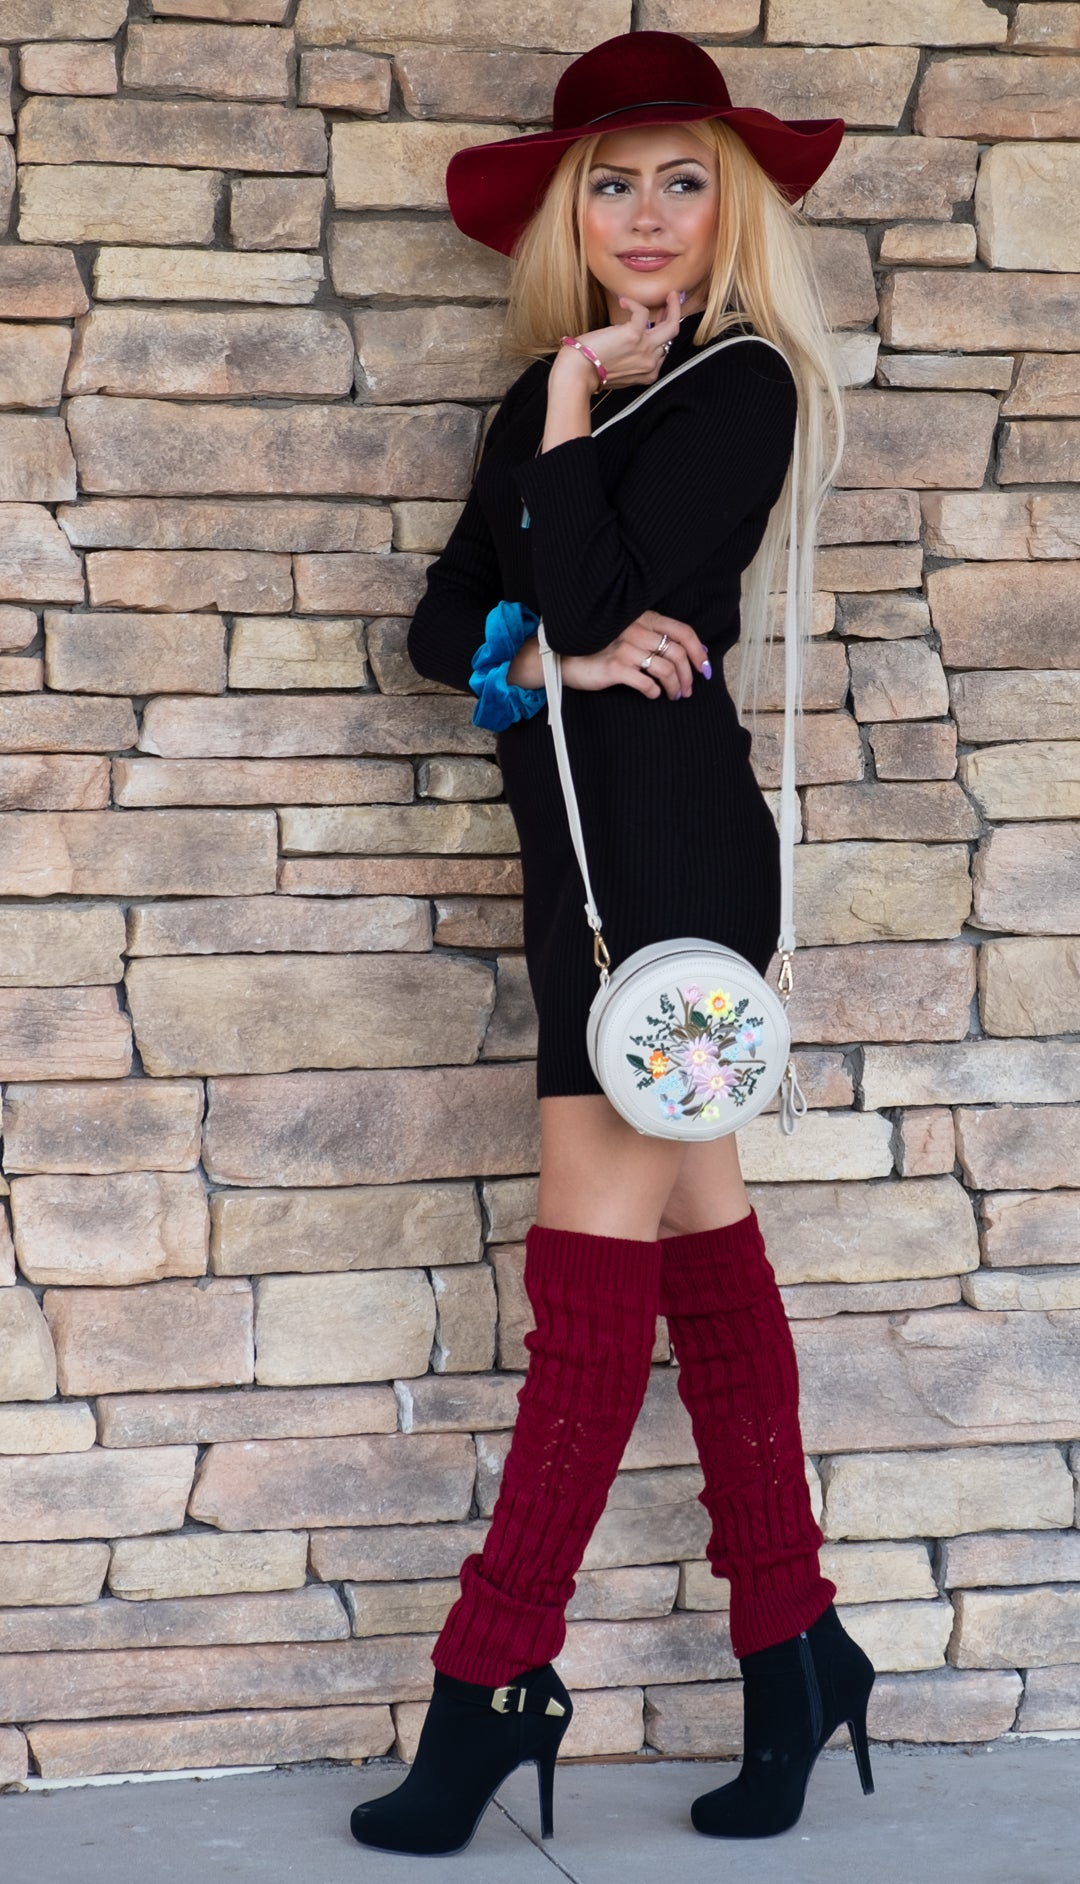 Round flower embroidered crossbody bag